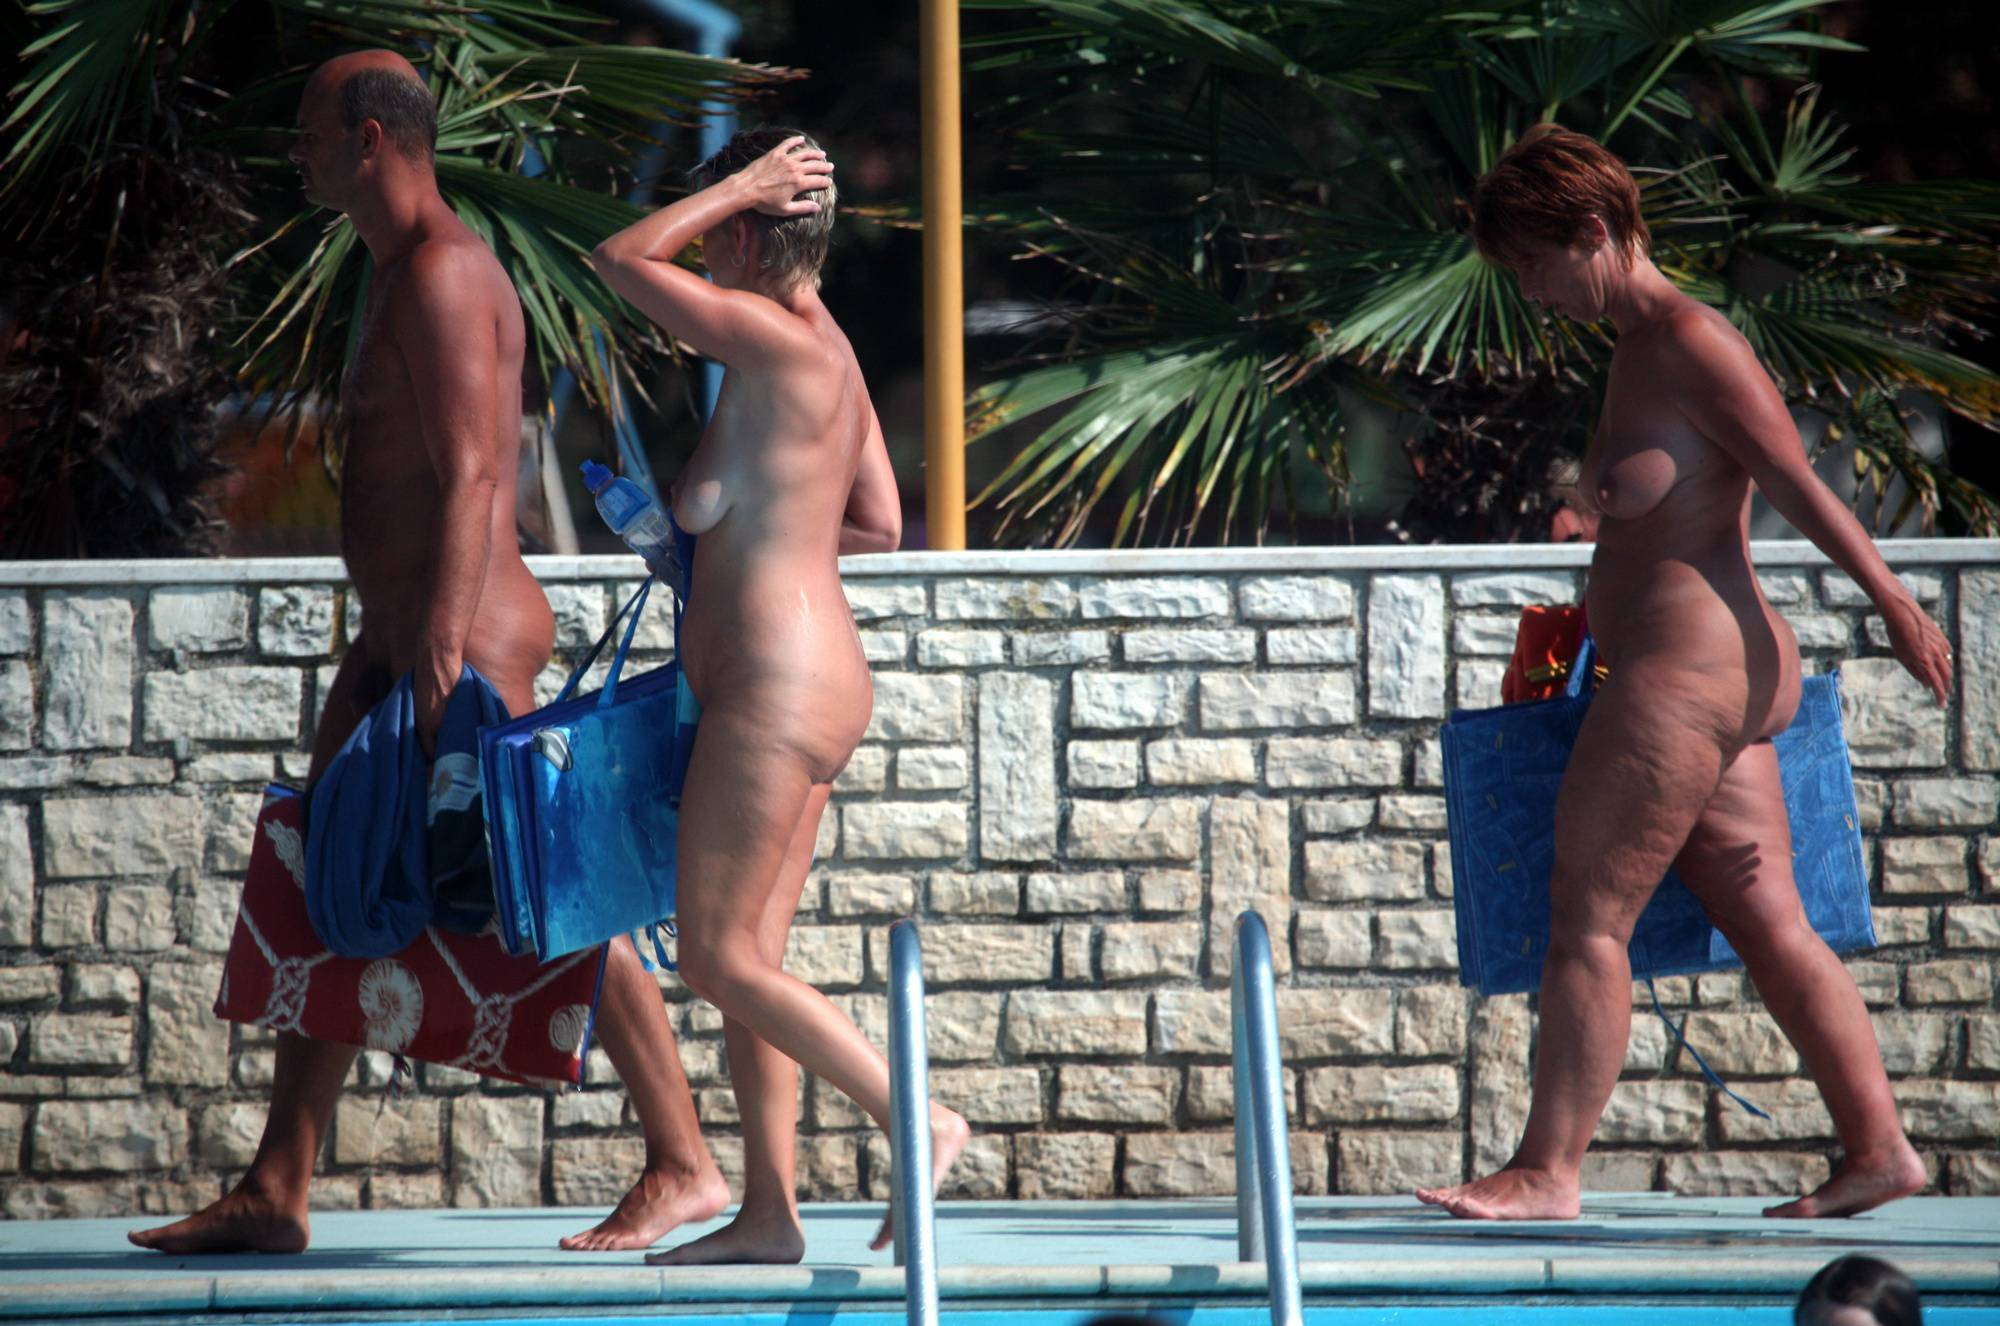 Naturist Pool Cleaning-Up - 2